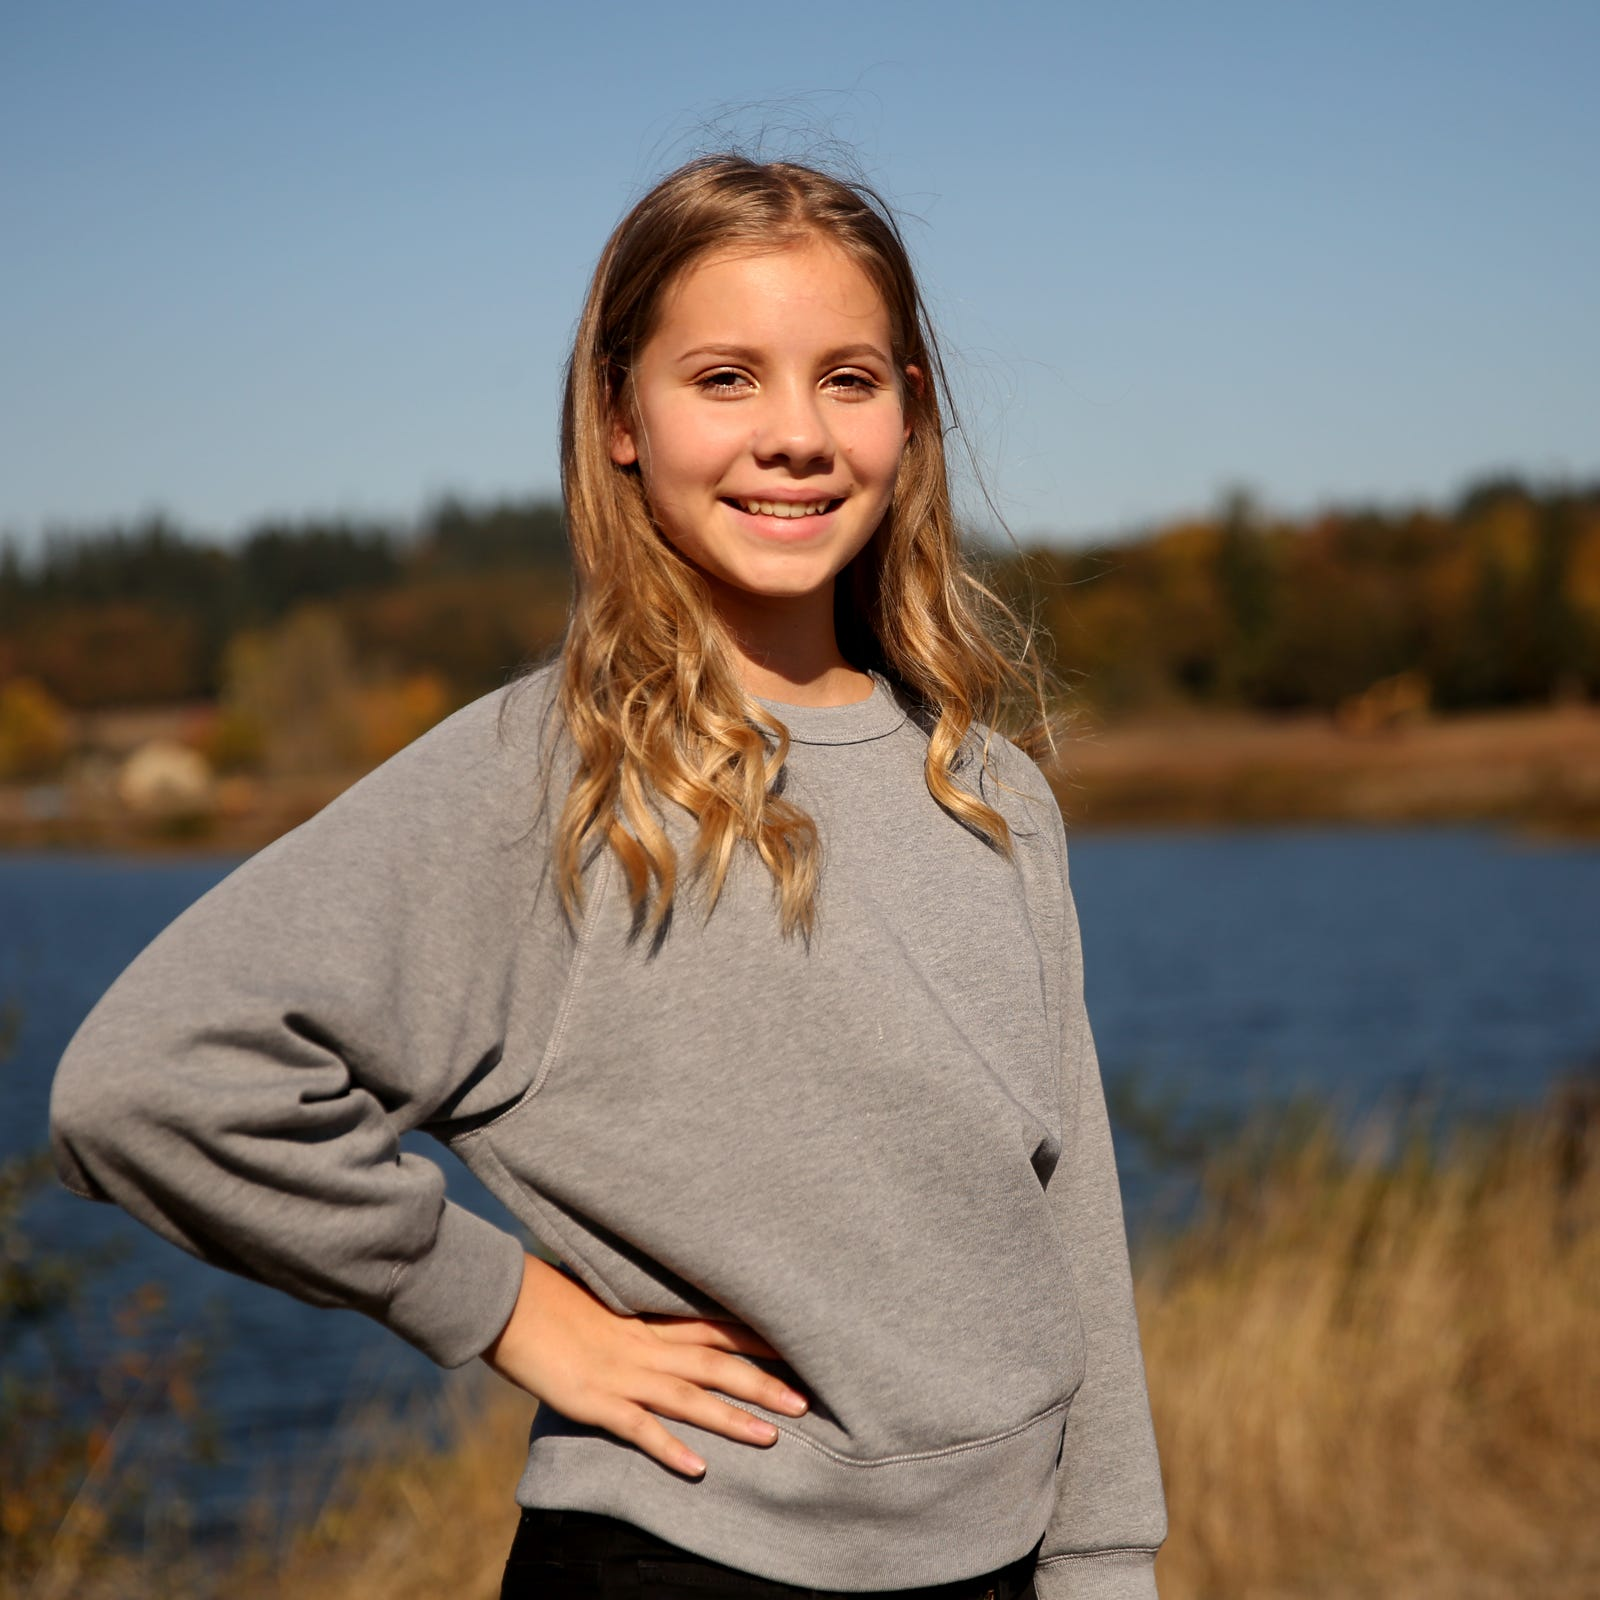 Presentation by a 14-year-old girl helps small town land big grant for new park